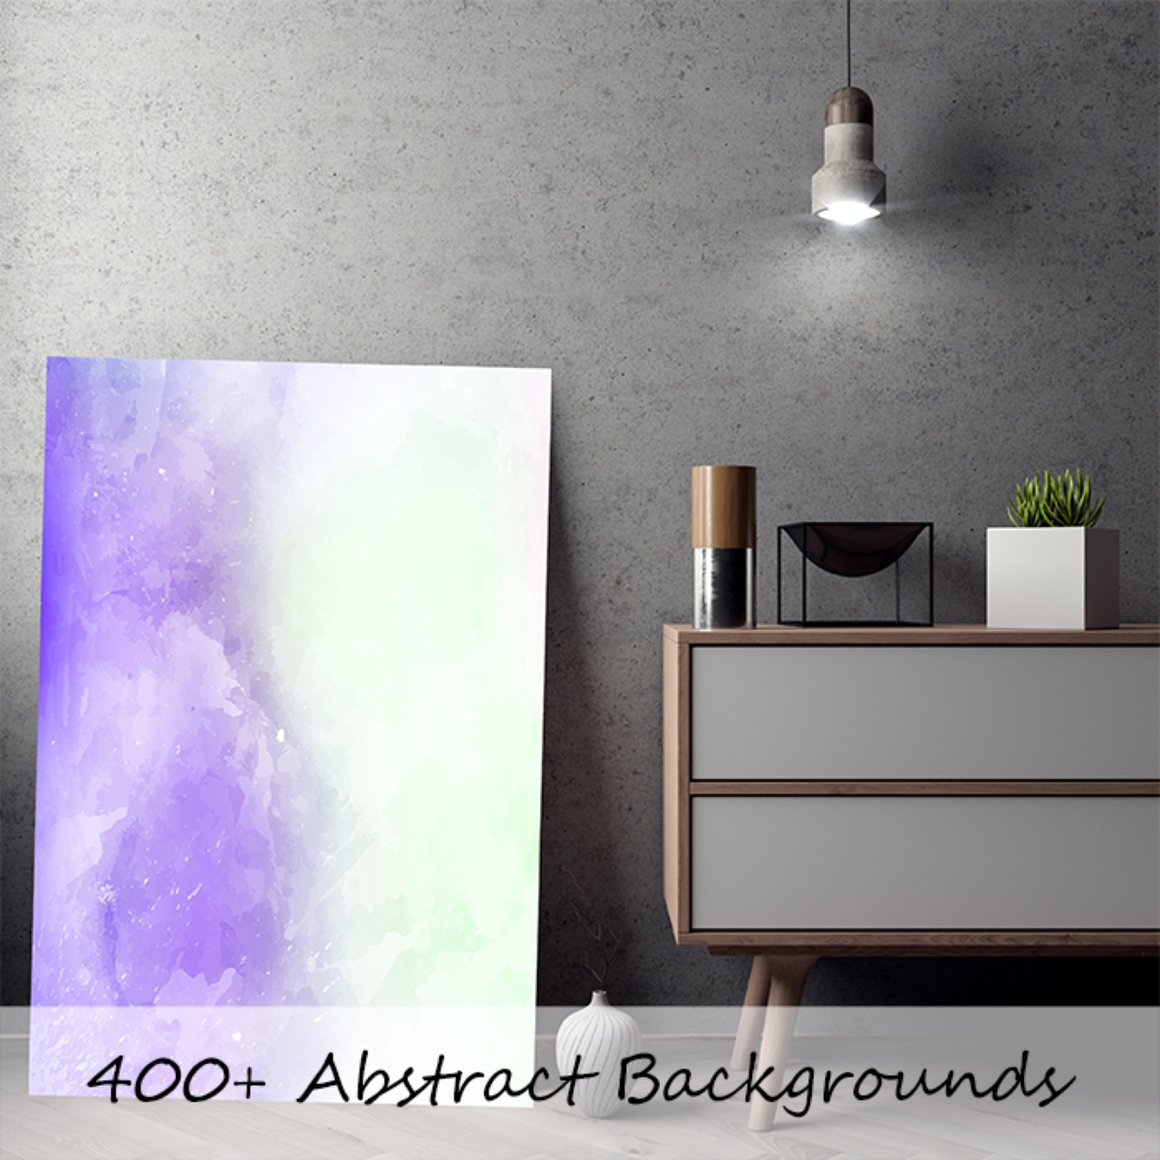 4000+ High-Resolution Backgrounds Bundle-Graphics-Artixty